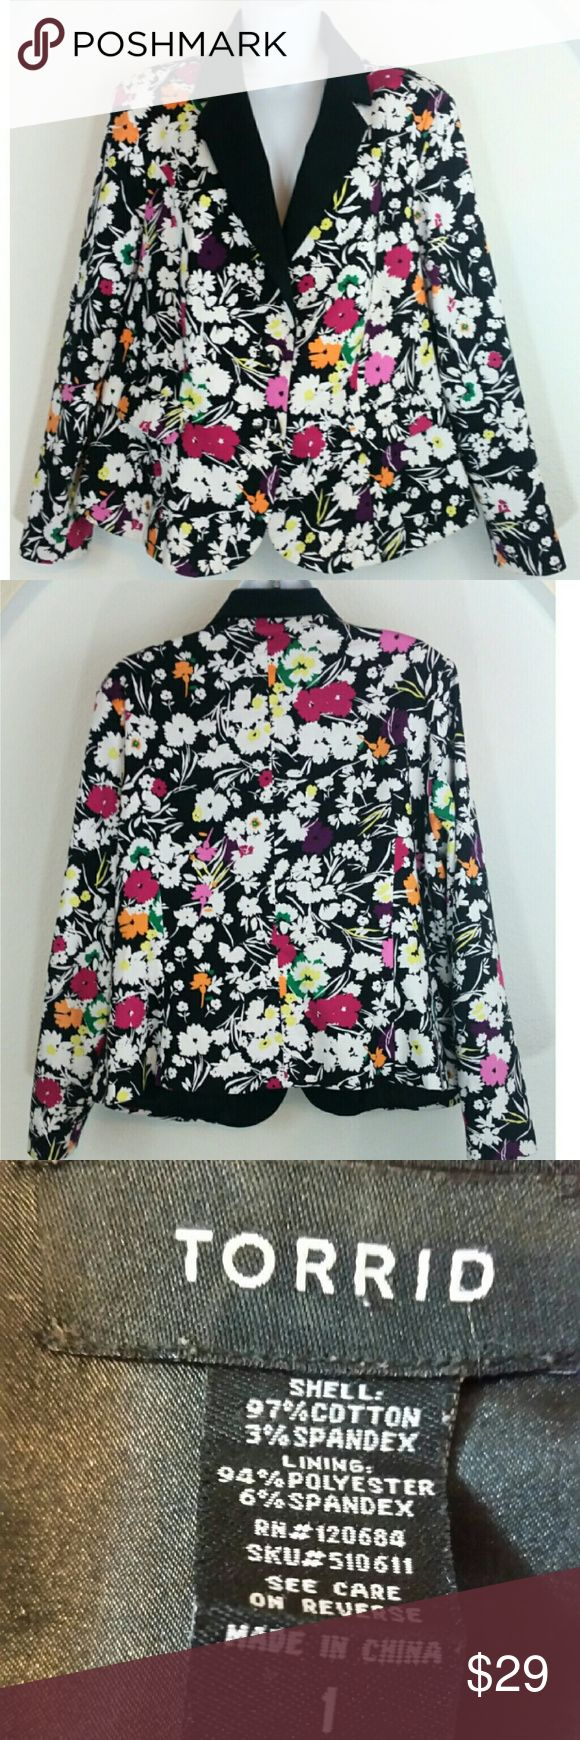 SOLD!!!  Torrid Floral Blazer Multi-Color Plus Size 1 on Poshmark! My username is: styleyourself. #shopmycloset #poshmark #fashion #shopping #style #forsale #torrid #Jackets & Blazers